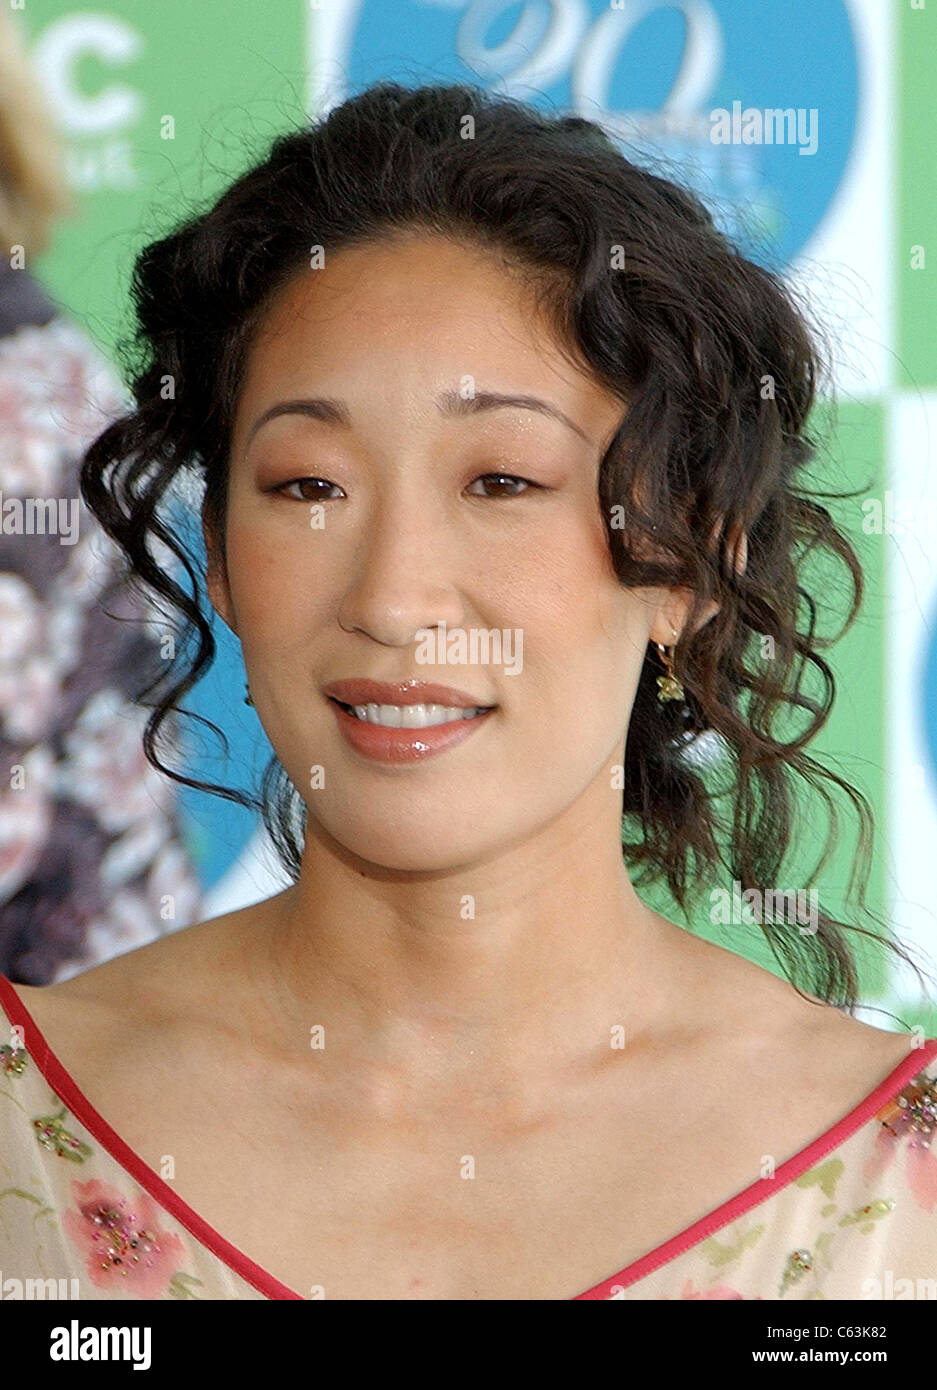 Sandra Oh at arrivals for 20th IFP Independent Spirit Awards, Los Angeles, CA, Saturday, February 26, 2005. Photo Stock Photo